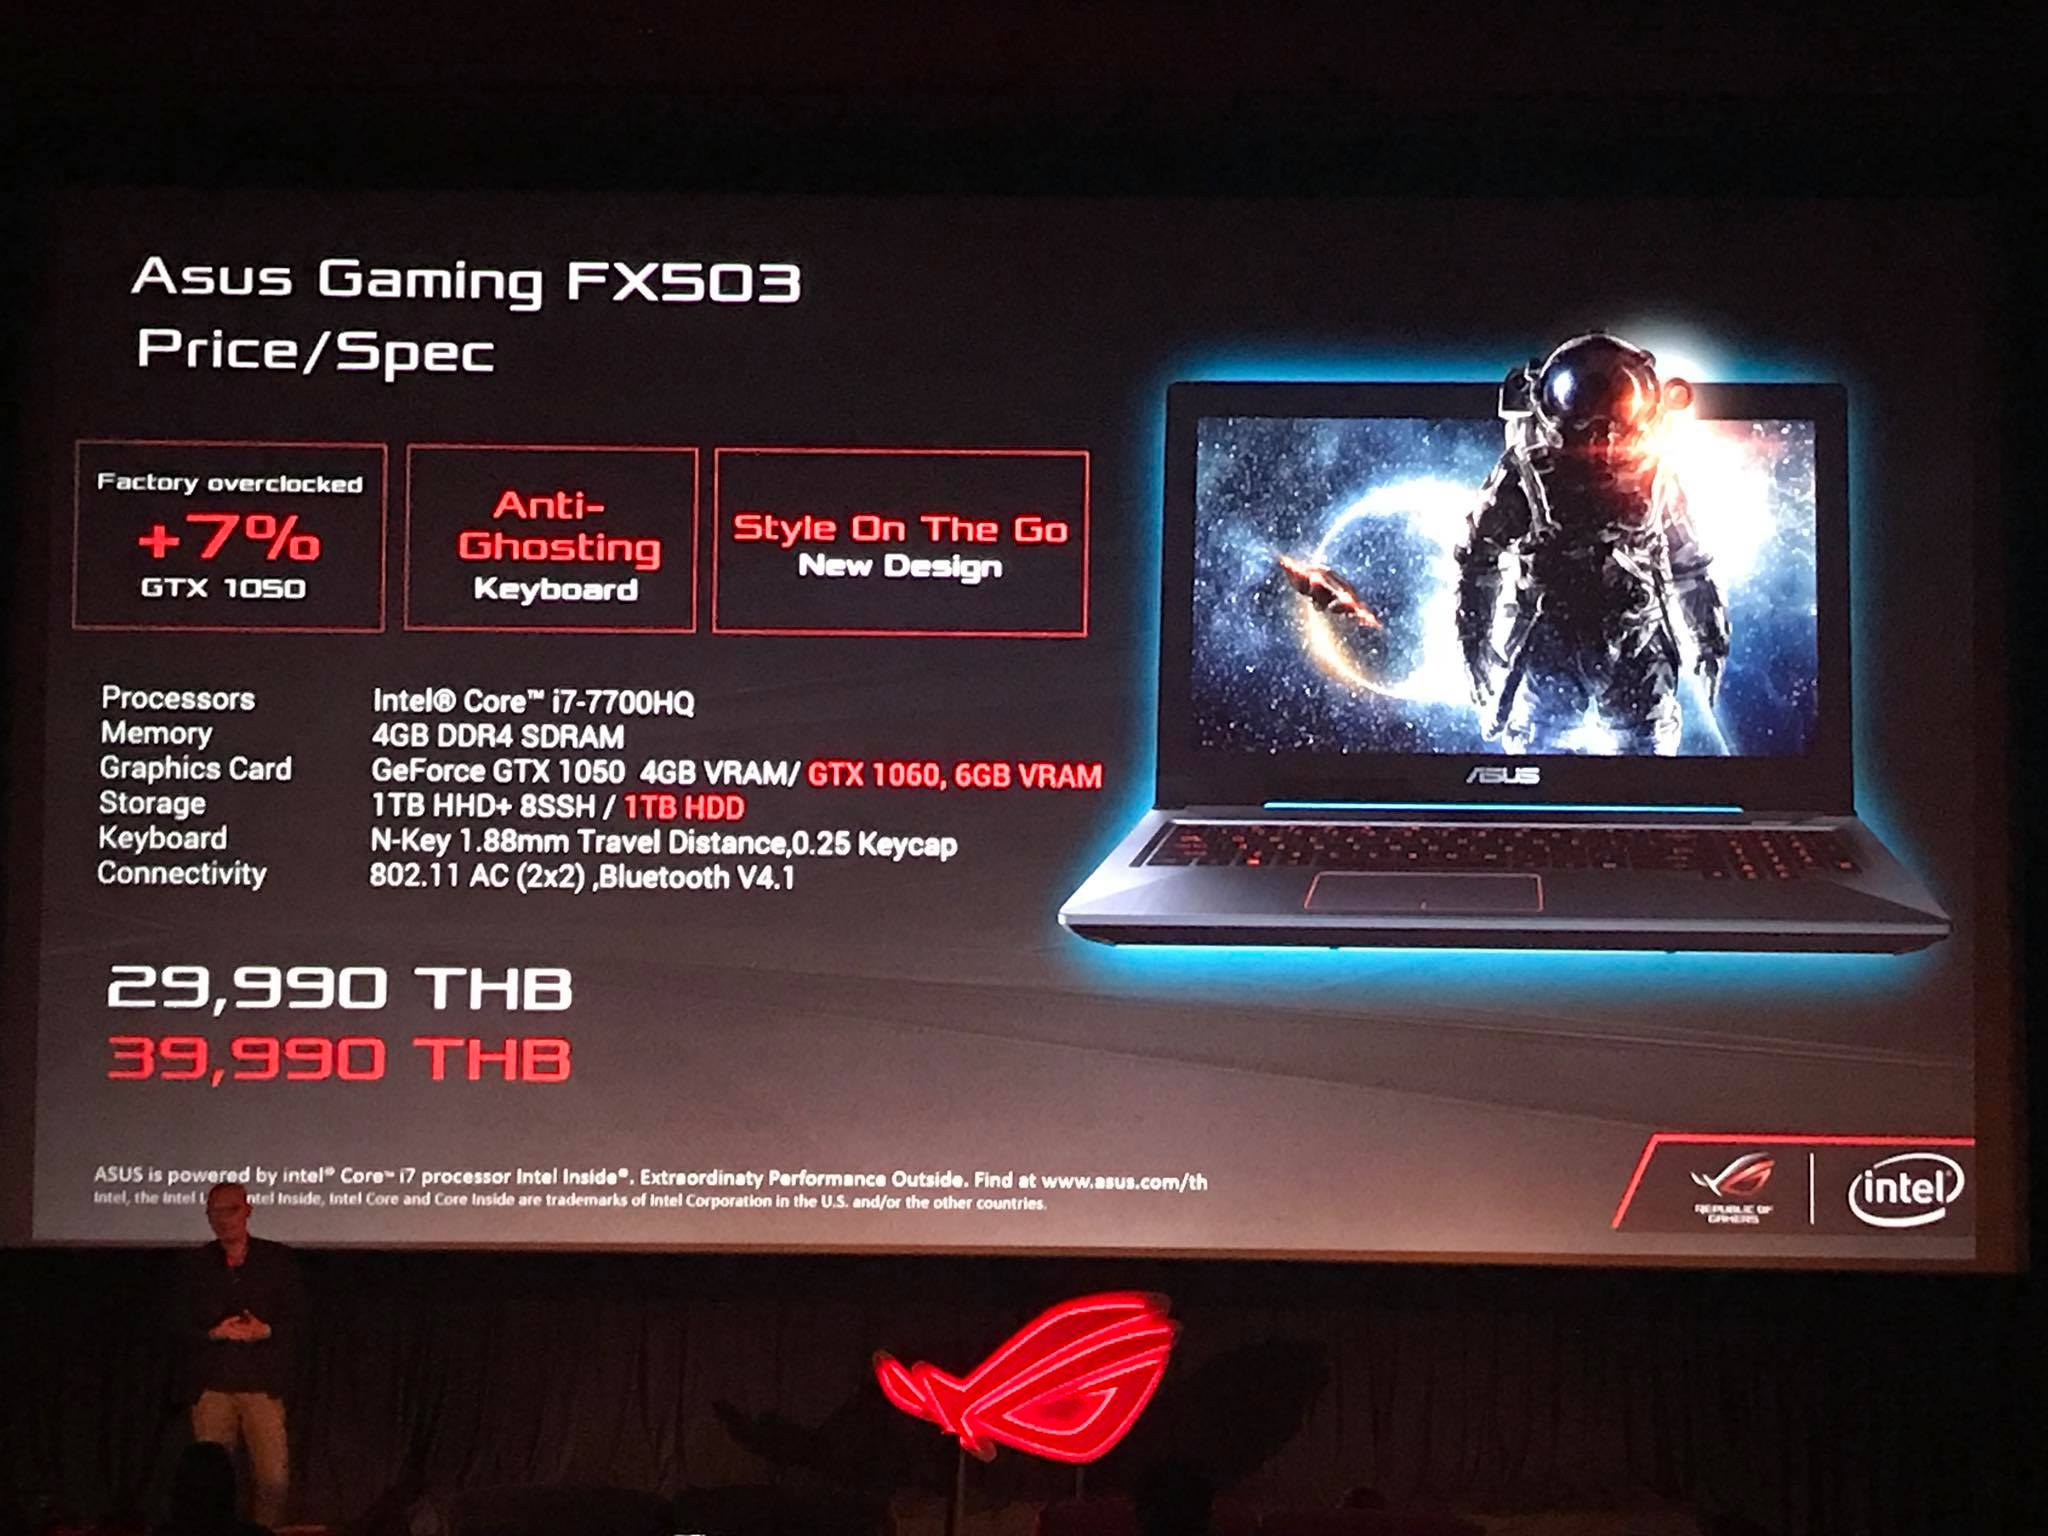 Preview ASUS FX503 Gaming Notebook GTX 1050 1060